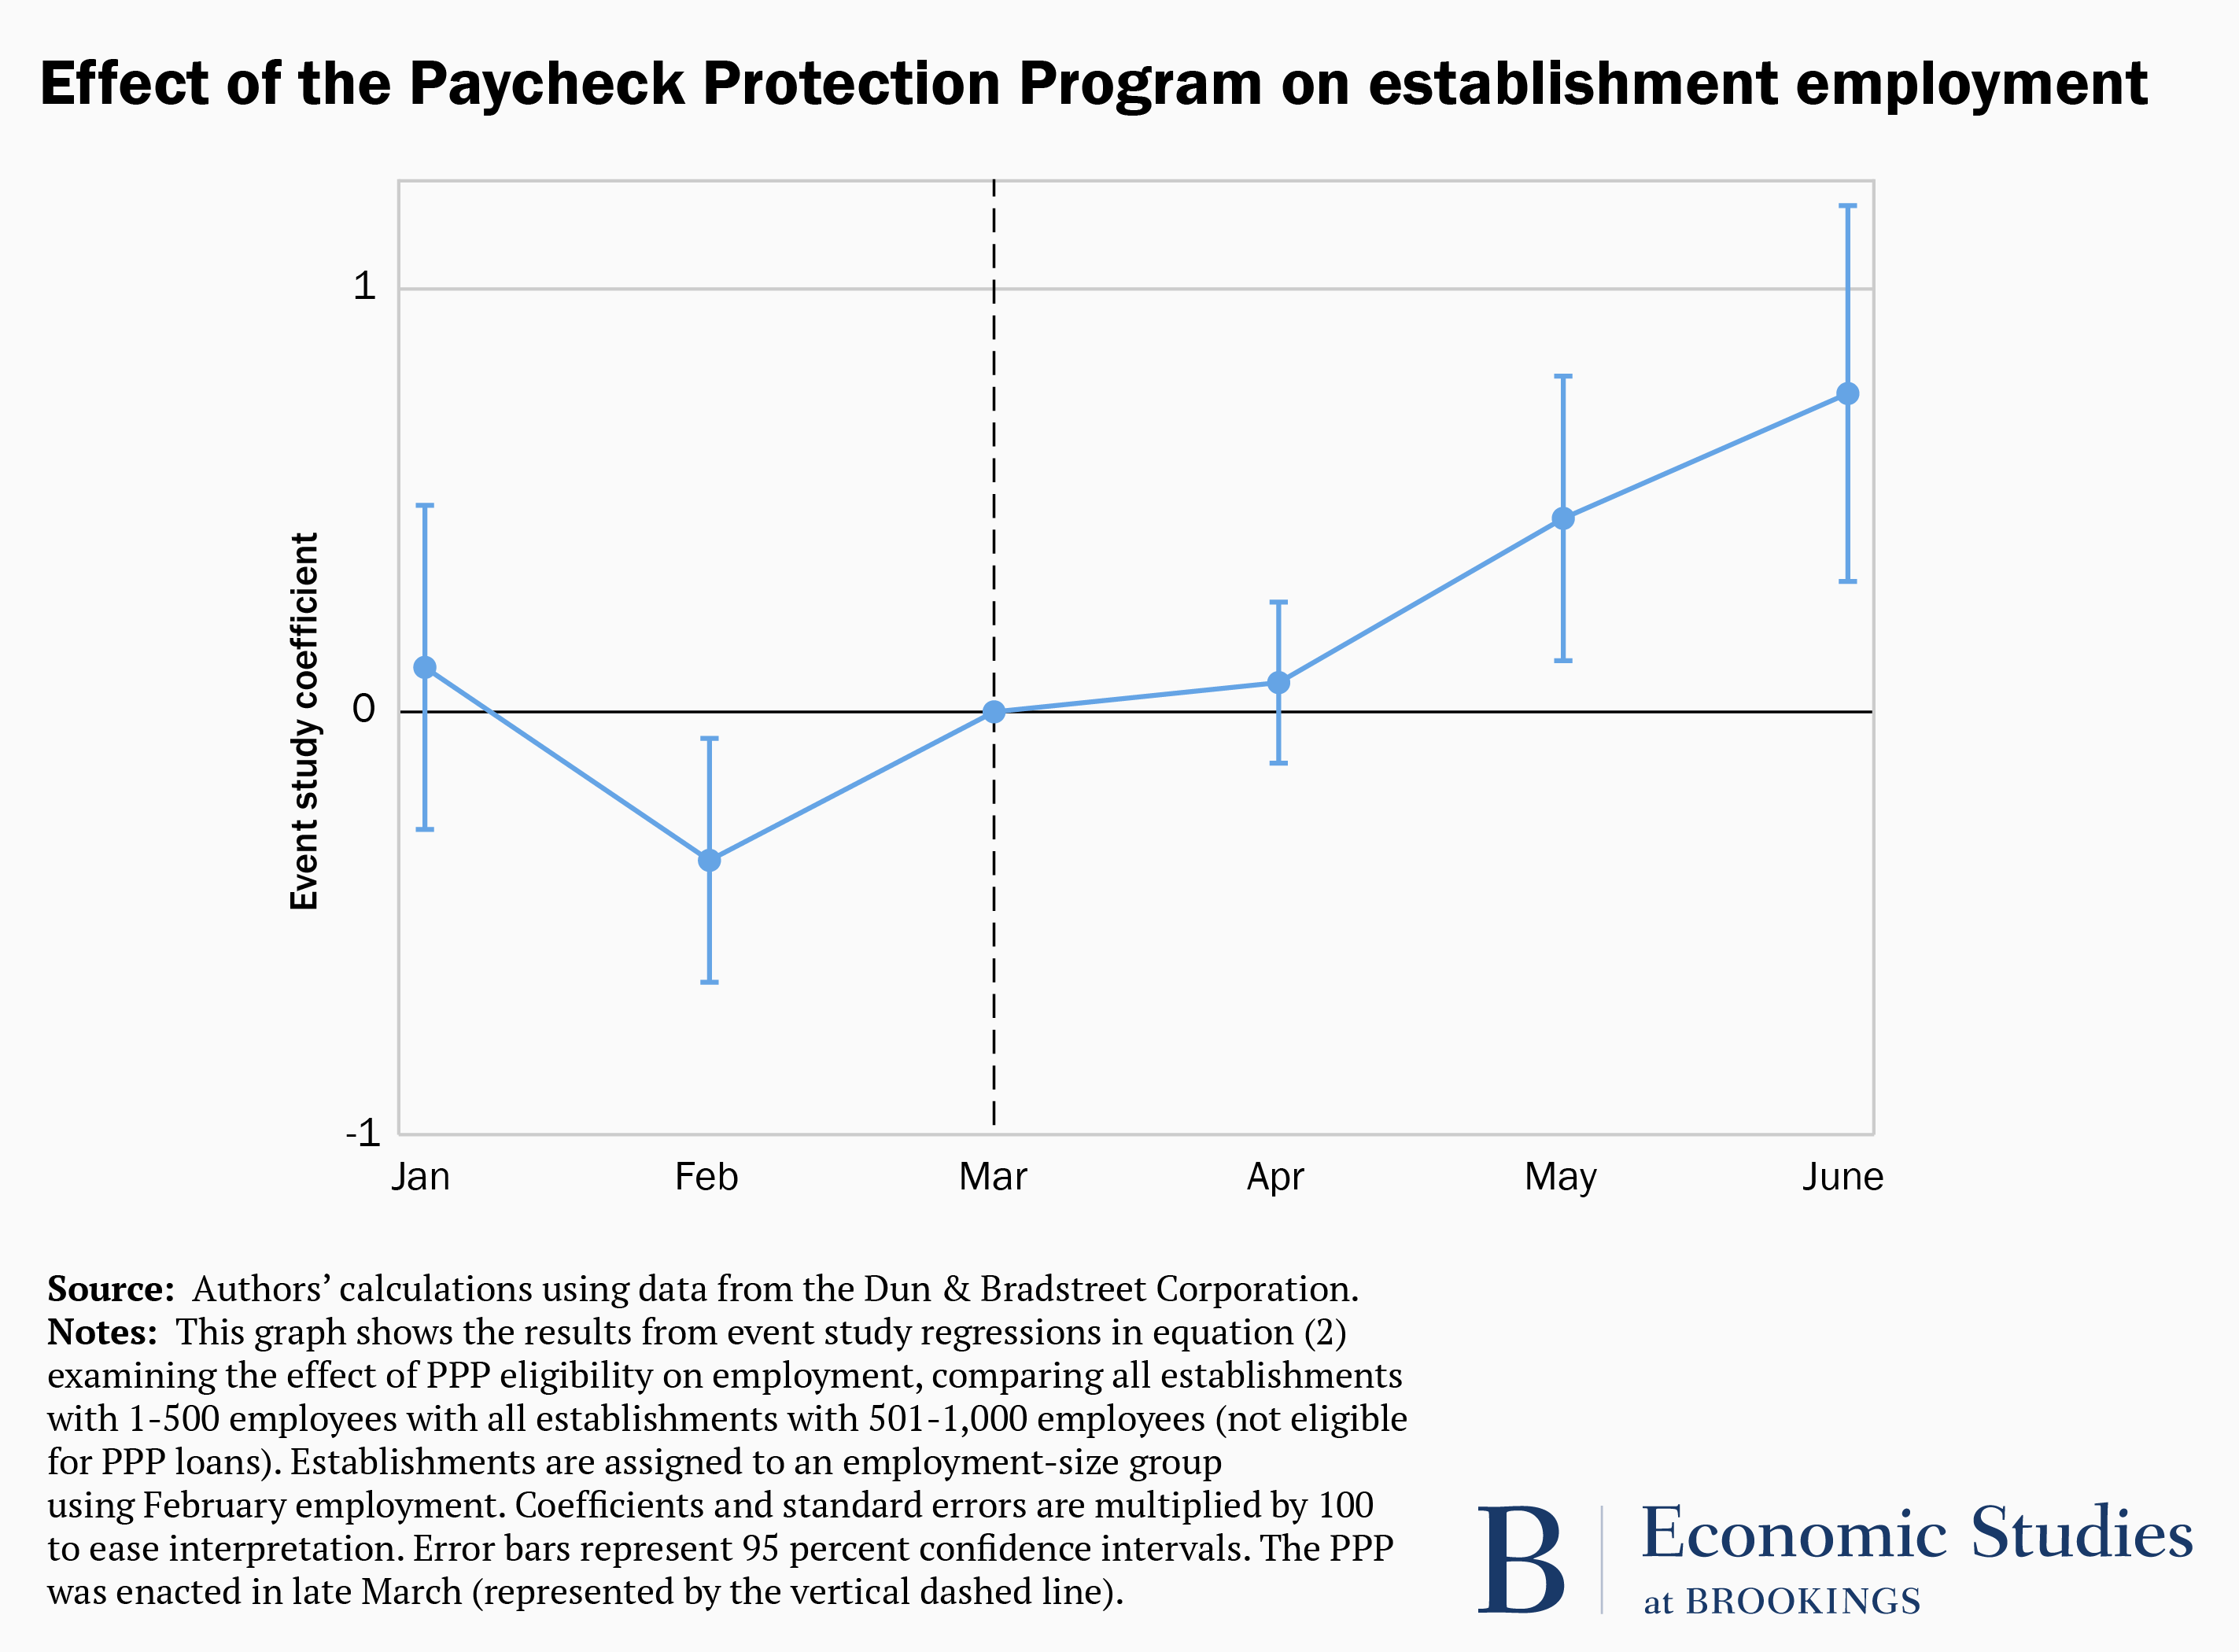 Graph showing the effect of the Paycheck Protection Program on employment